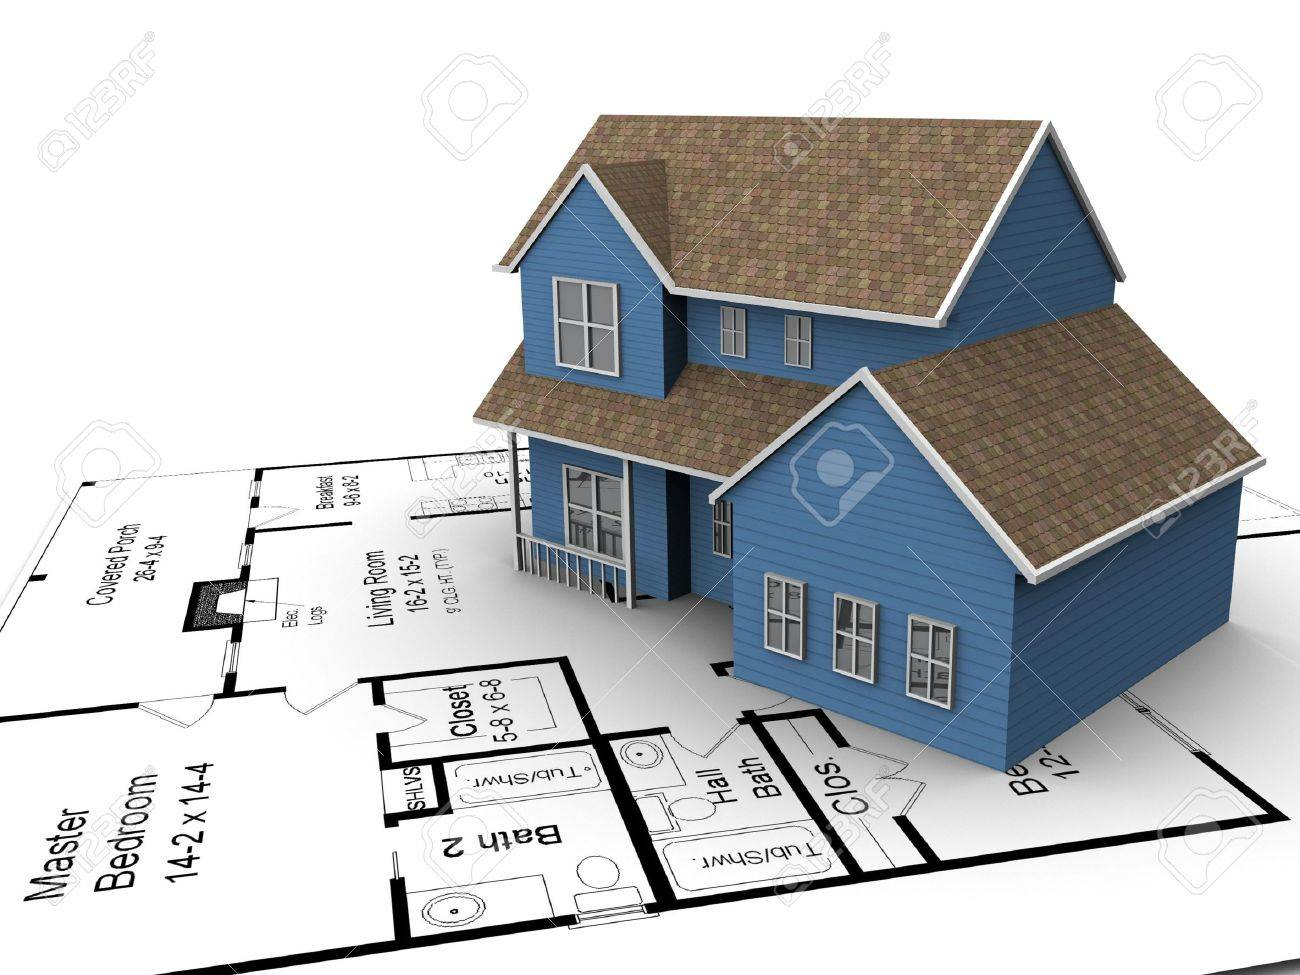 house plans stock photos pictures royalty free house plans house plans new build house on a set of building plans